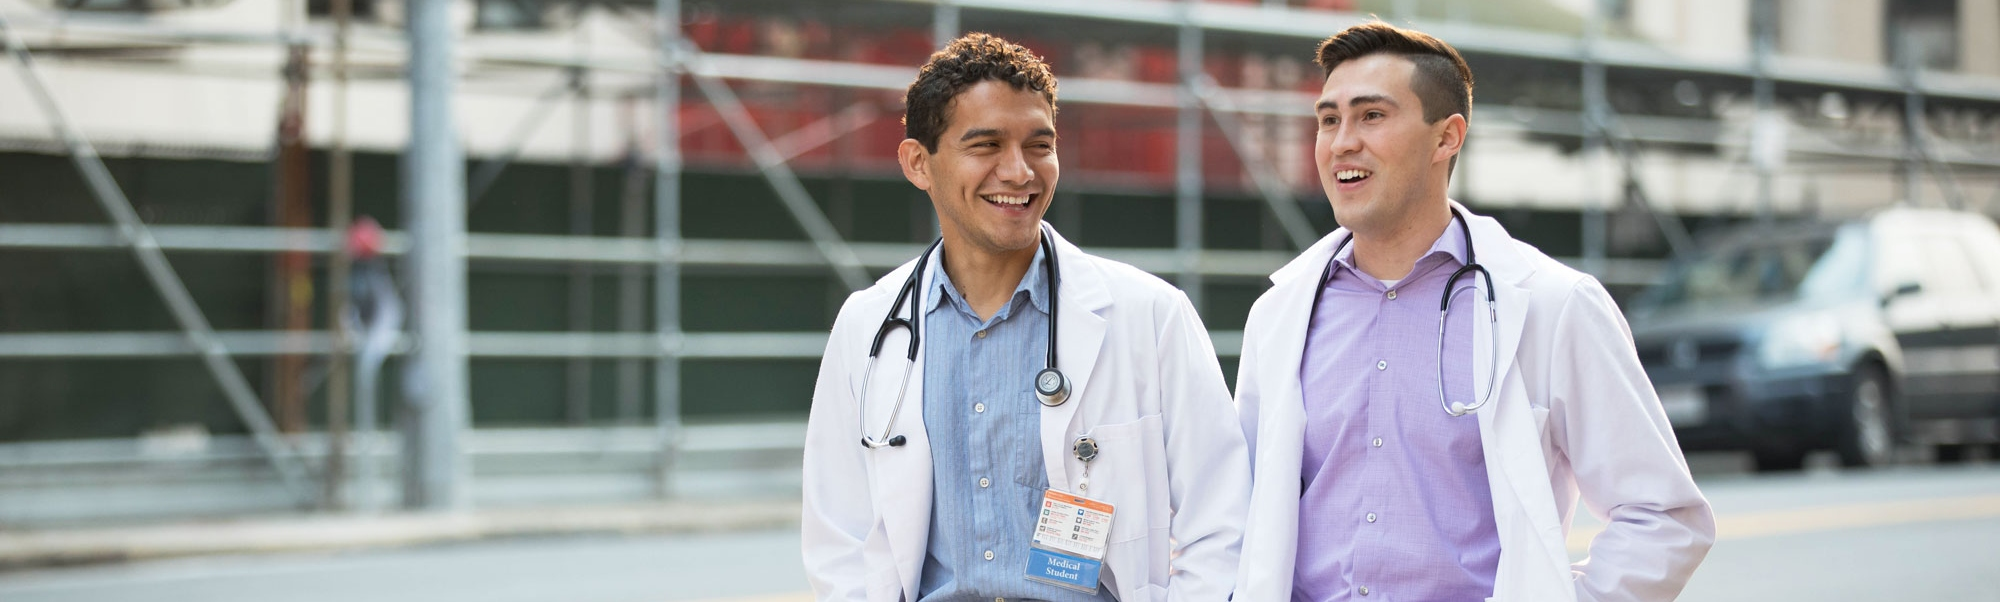 2 medical students walk down the street